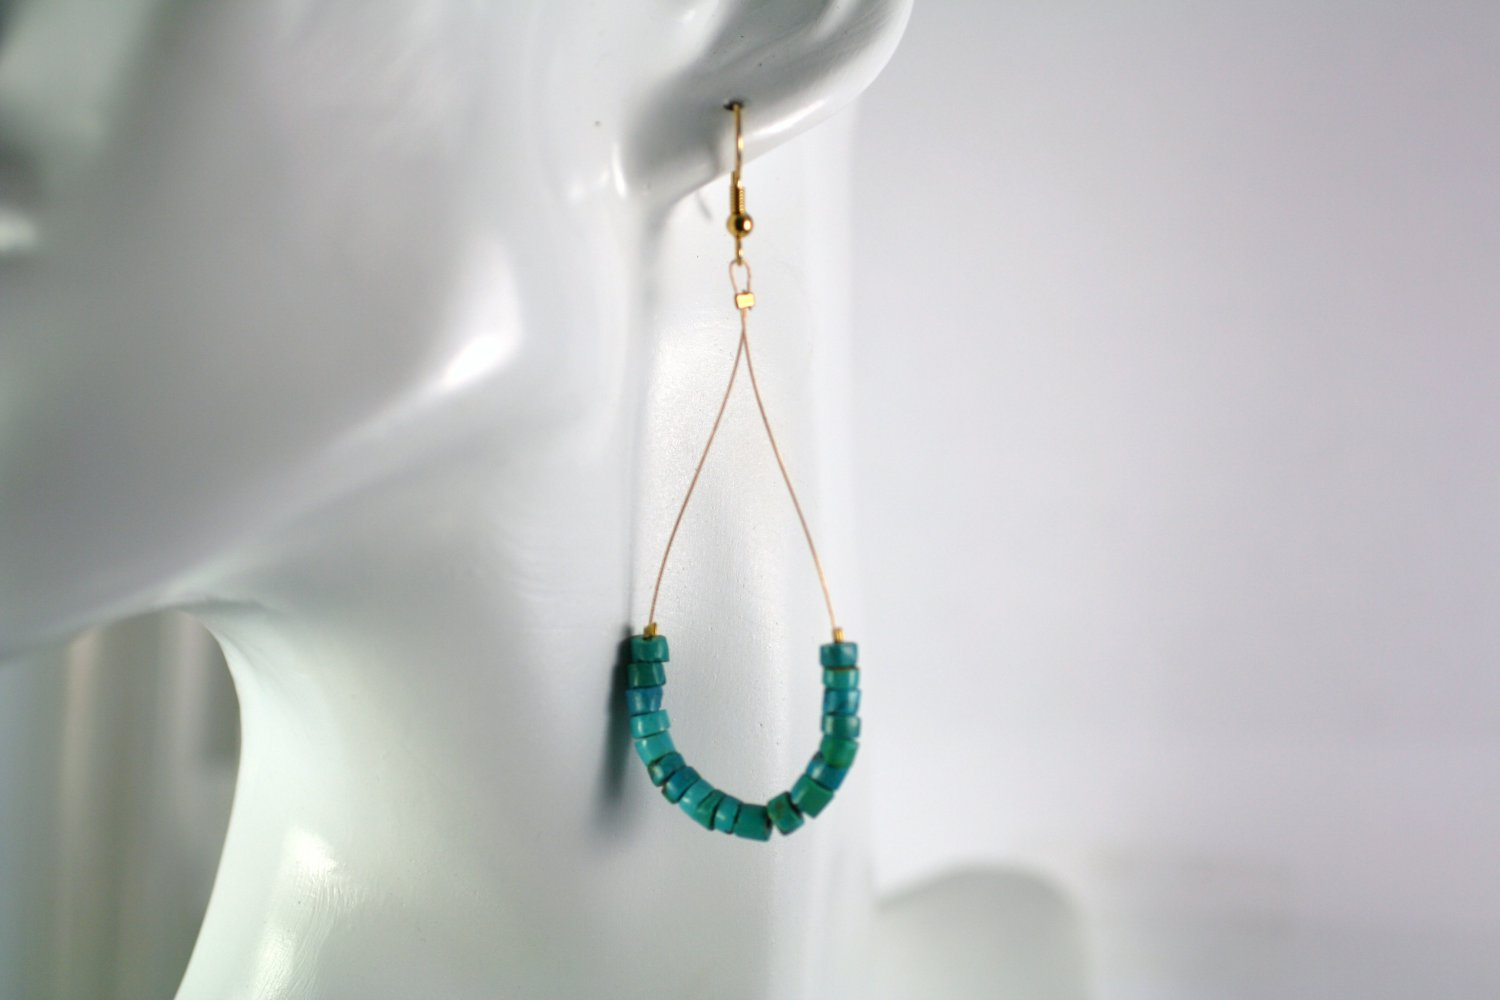 Gold Tone Teardrop Shape Turquoise Heishi Beaded  Earrings     Handcrafted Jewelry